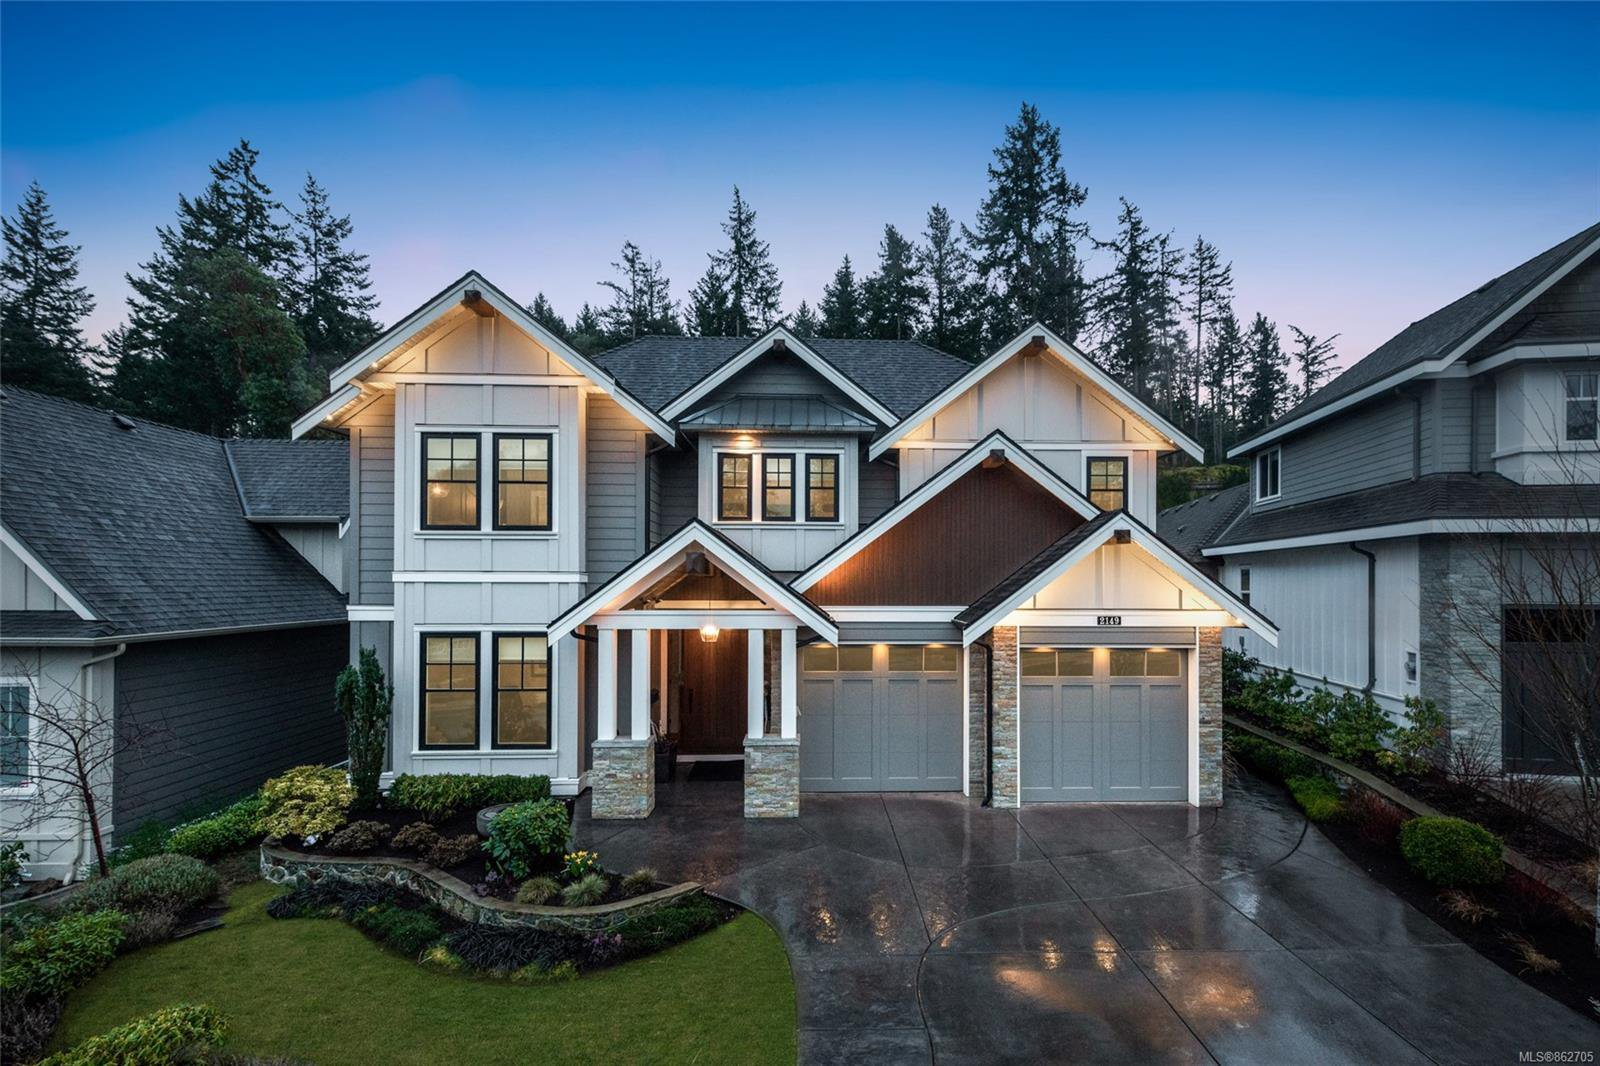 Main Photo: 2149 Champions Way in : La Bear Mountain House for sale (Langford)  : MLS®# 862705